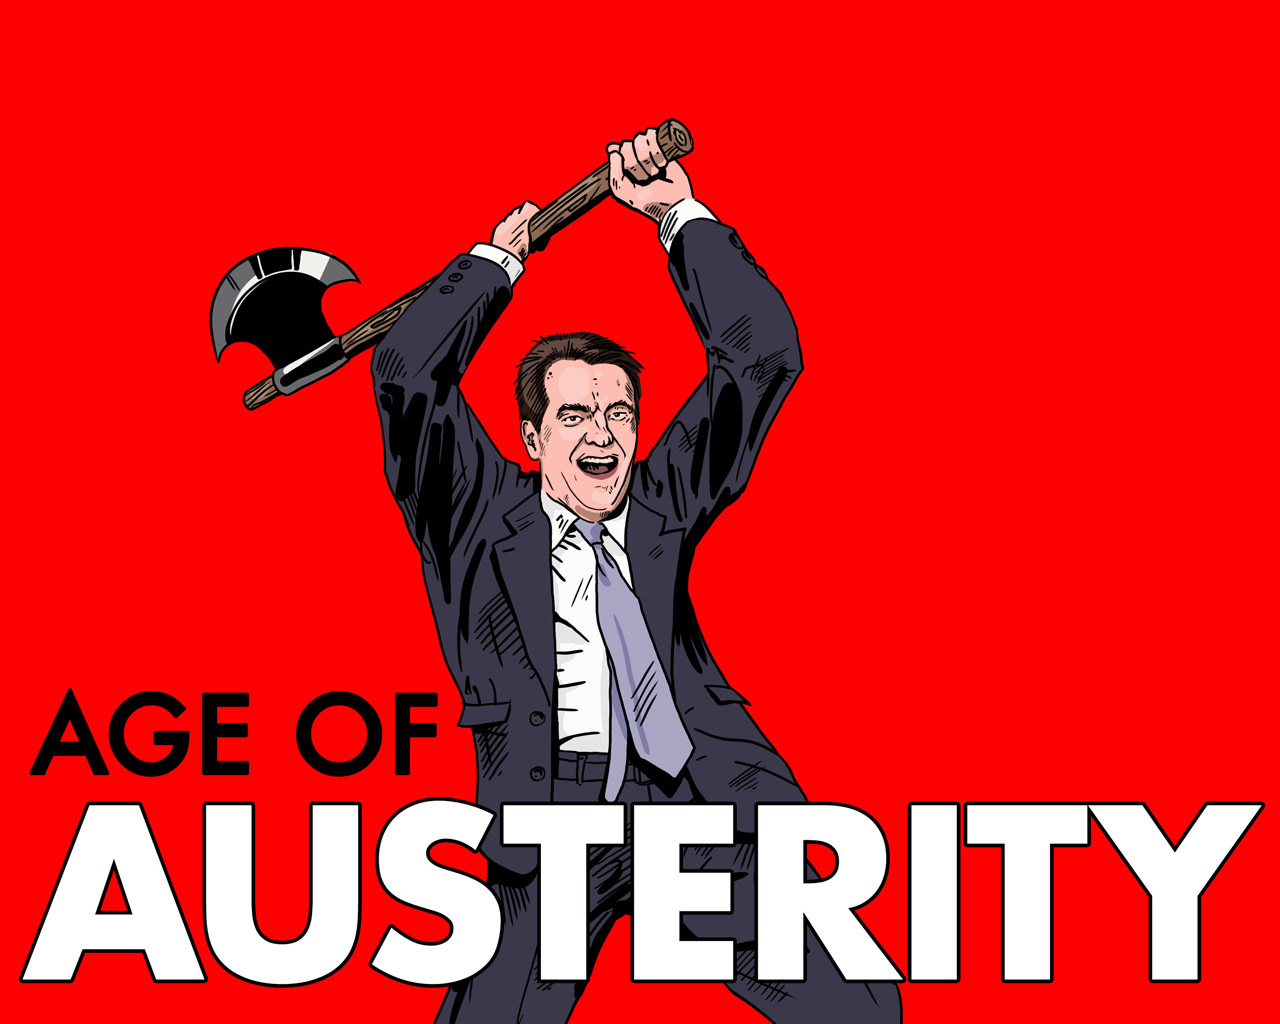 Class in the age of austerity | occasional links and commentary